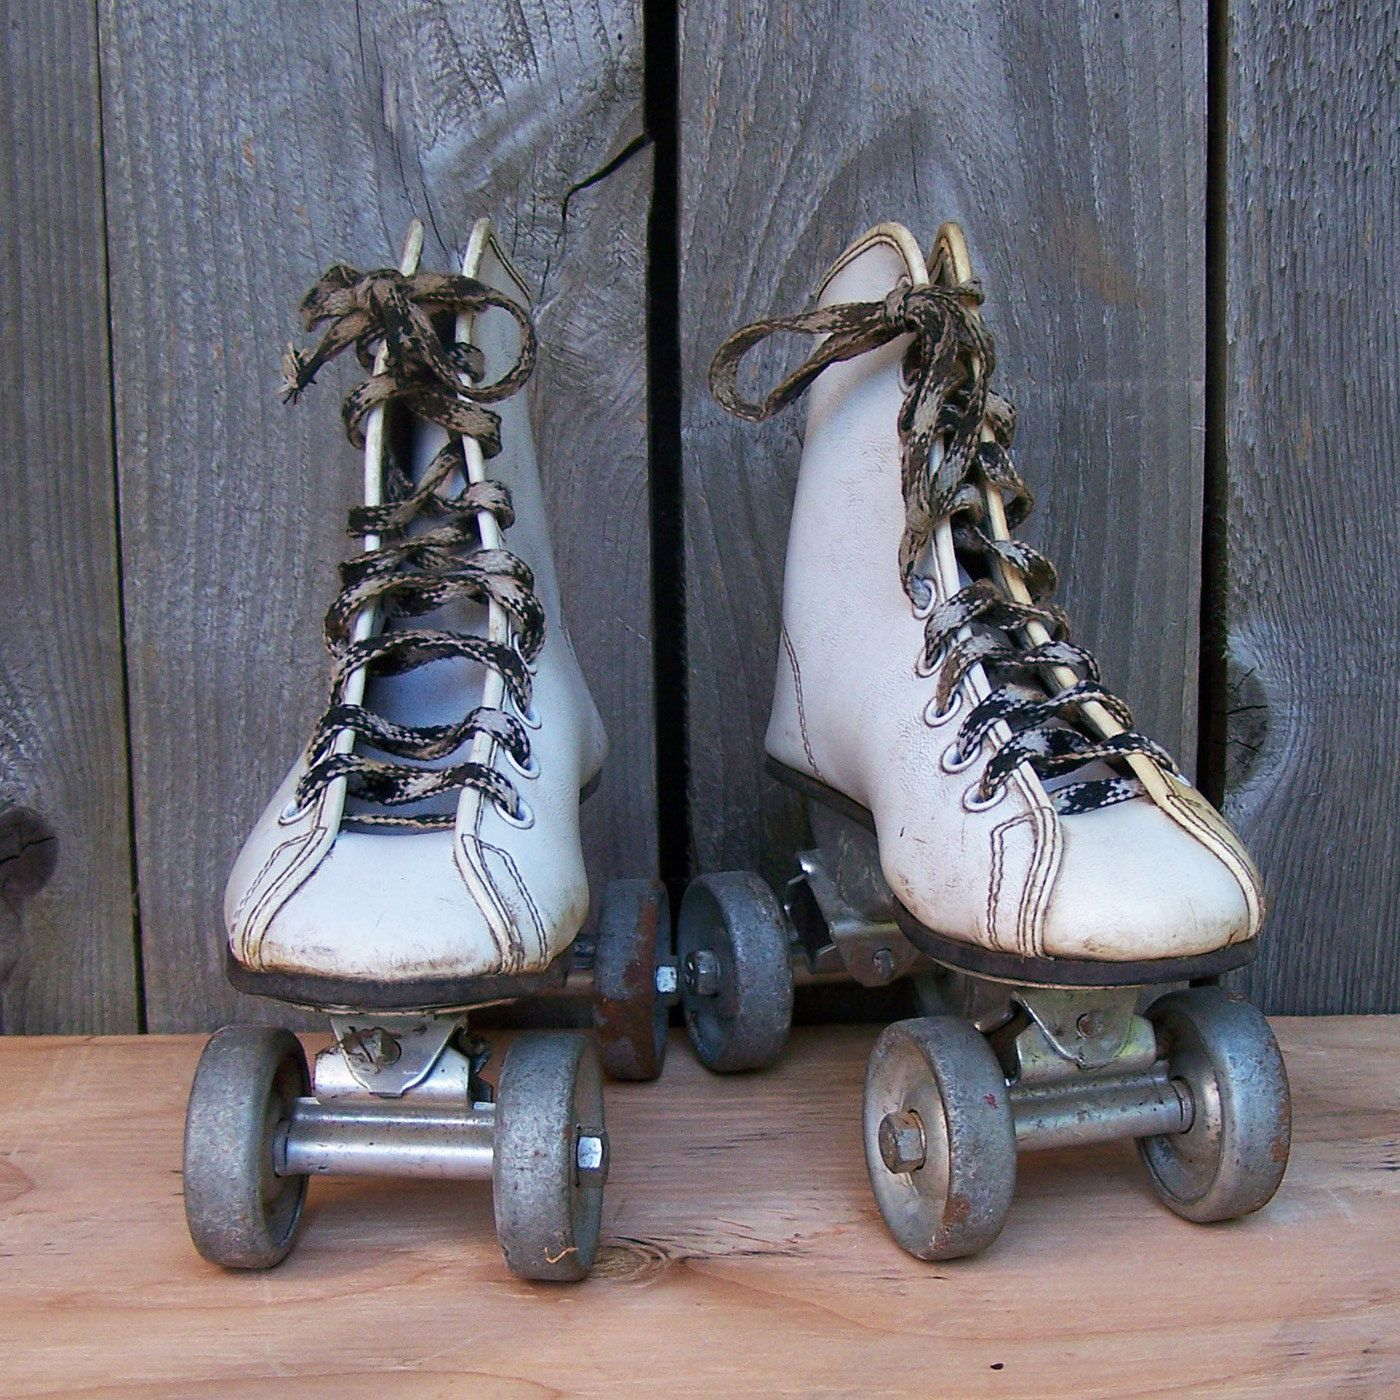 My first roller skates had metal wheels like these! They would make sparks off the sidewalk!